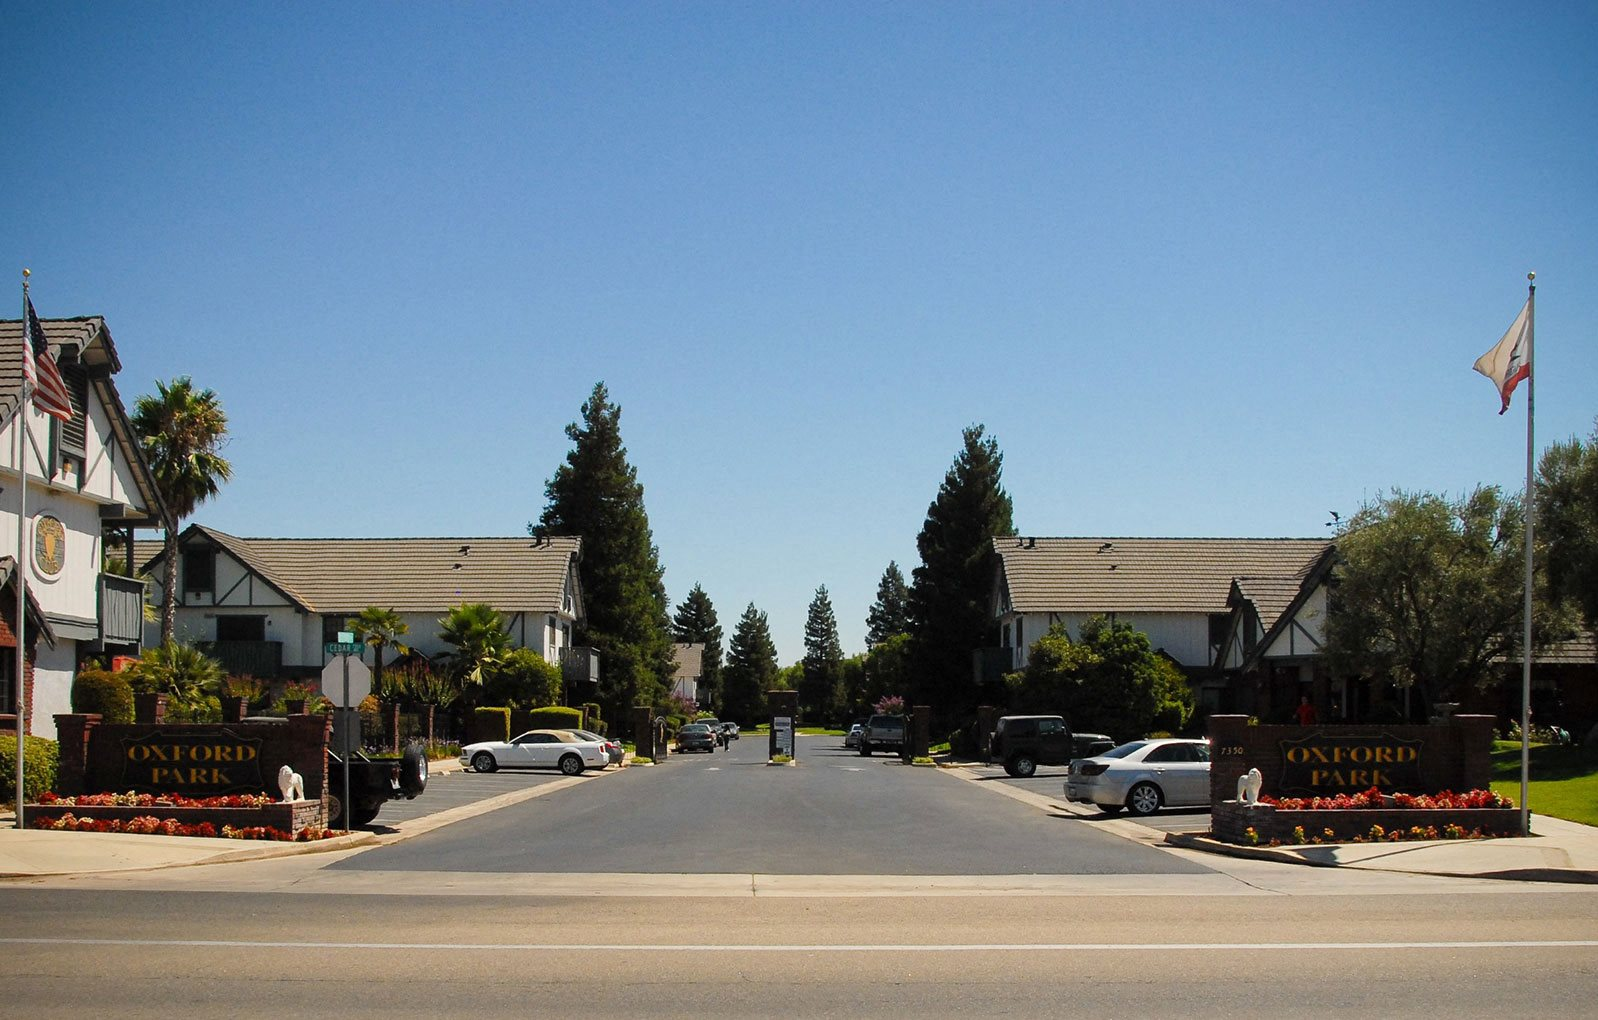 Here are the 5 worst neighborhoods in Fresno according to data: